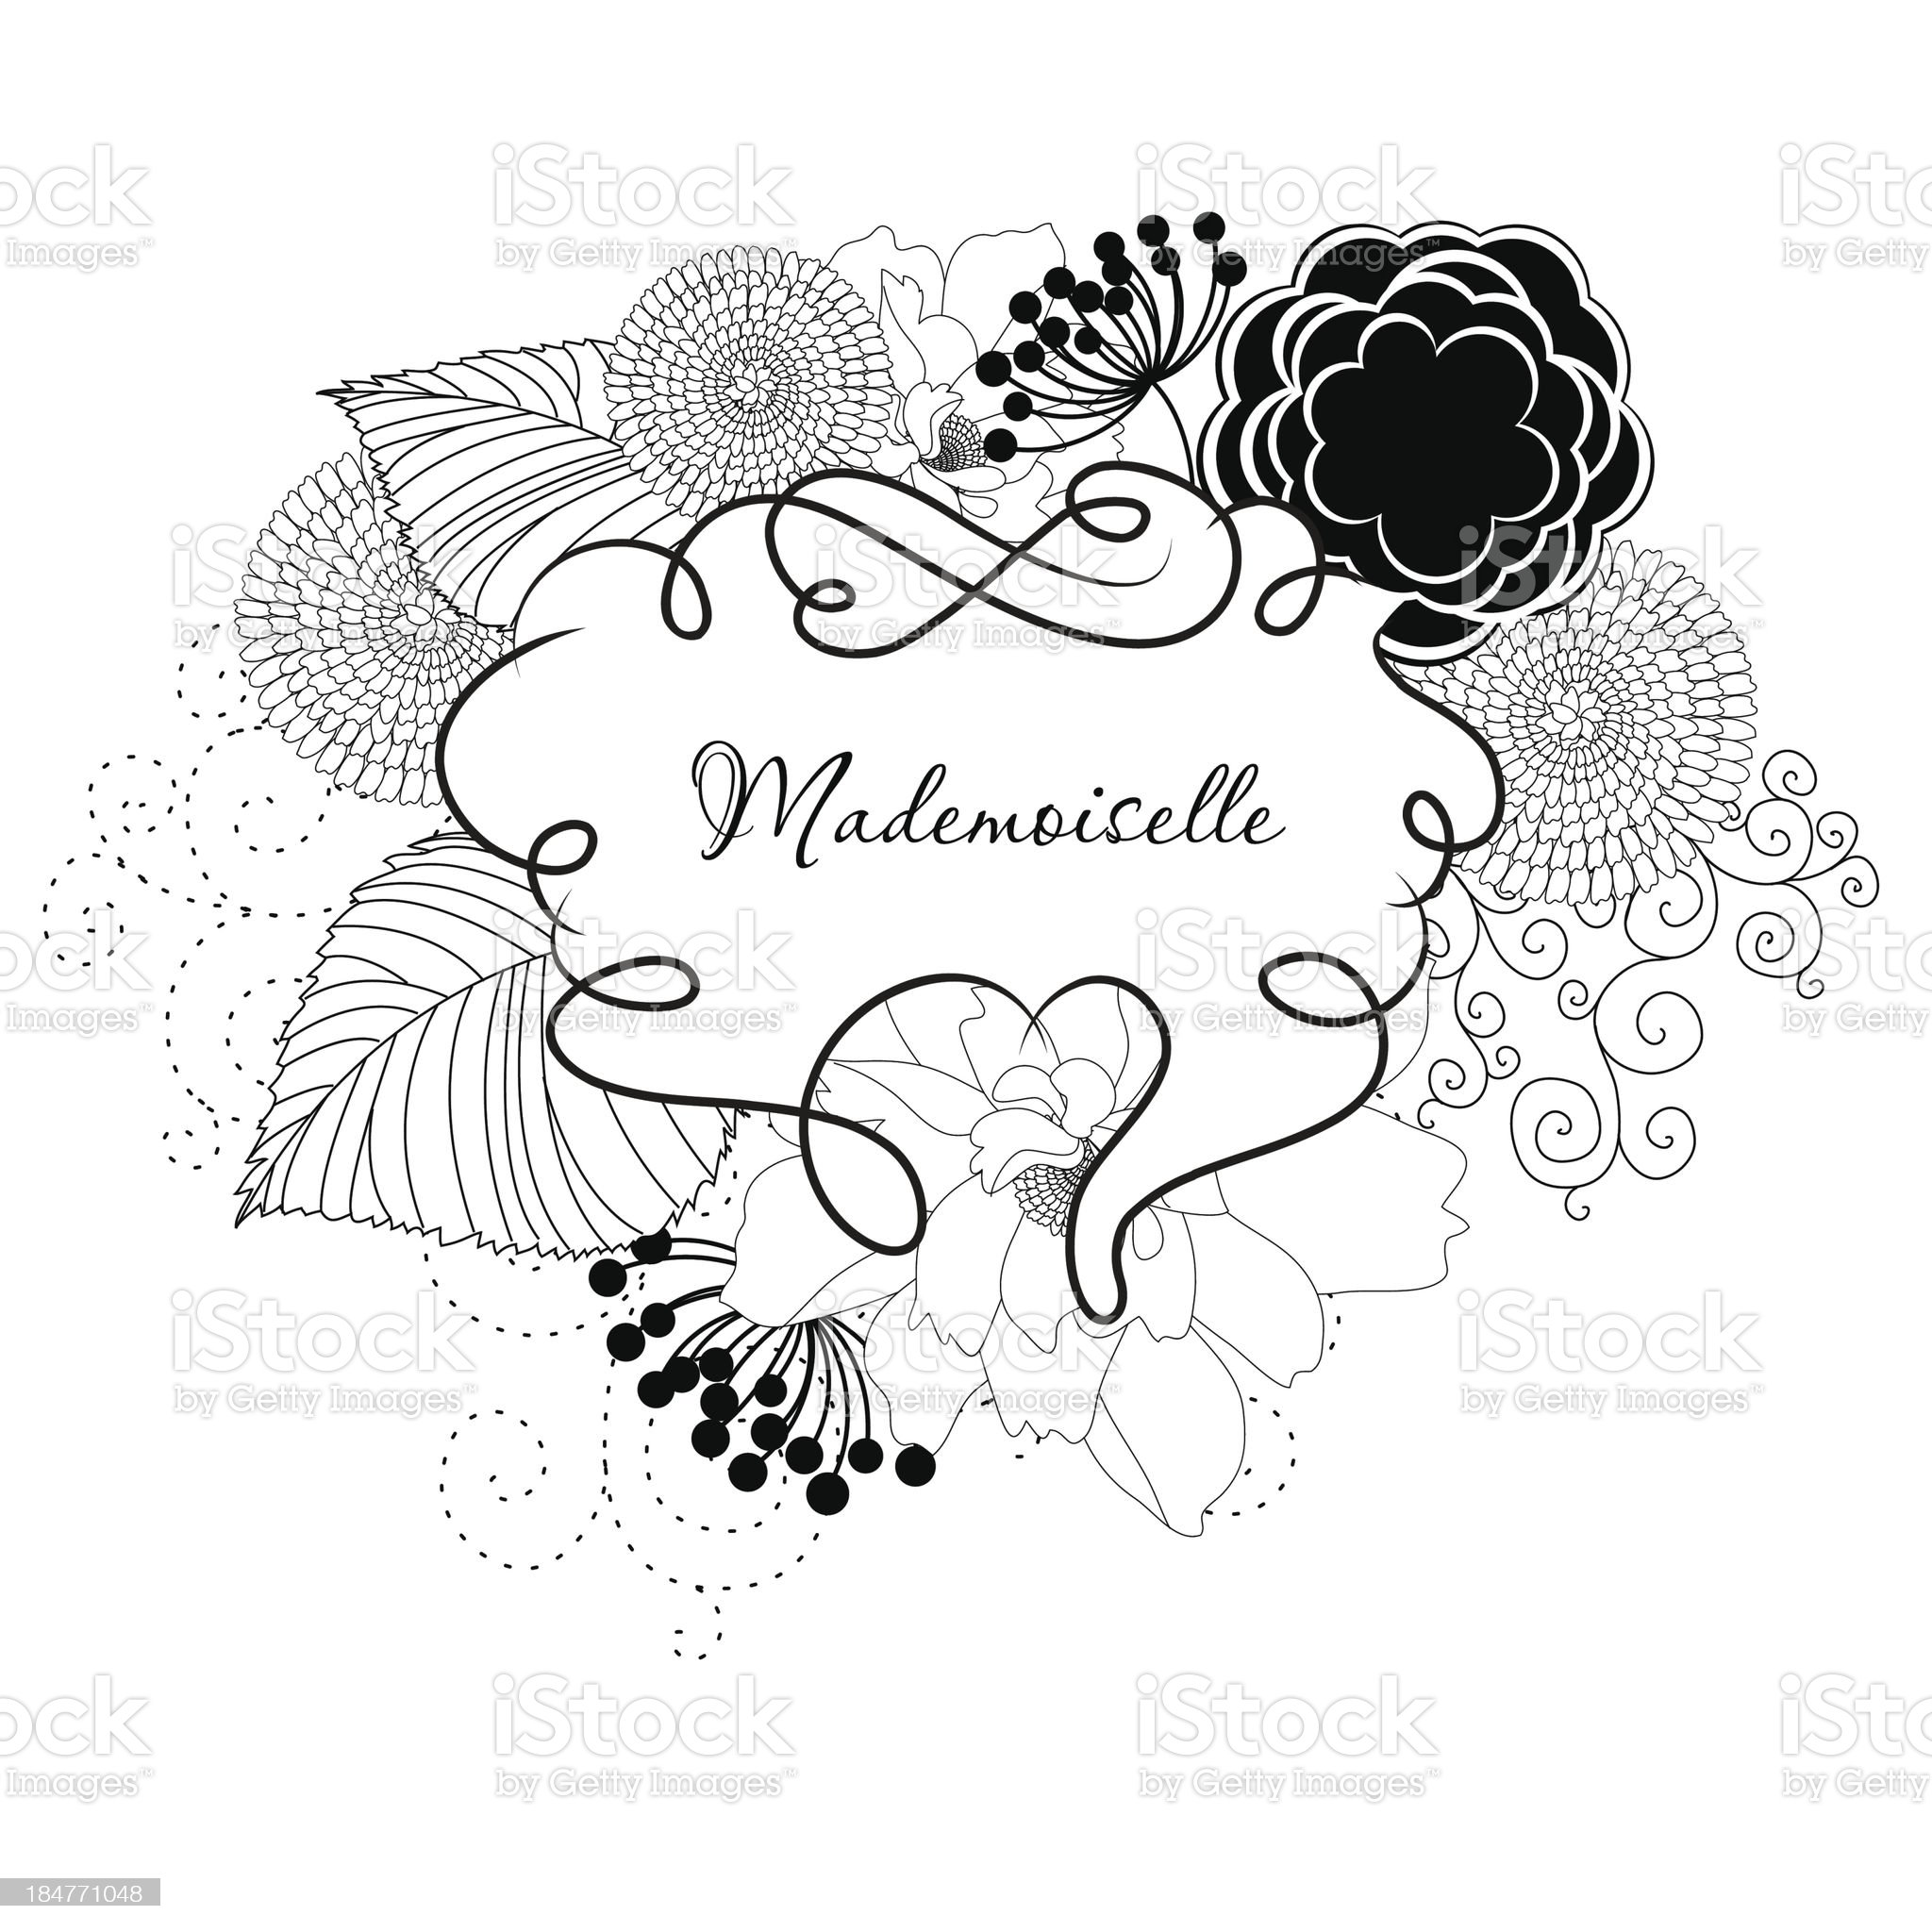 Gourgeous Doodle frame royalty-free stock vector art